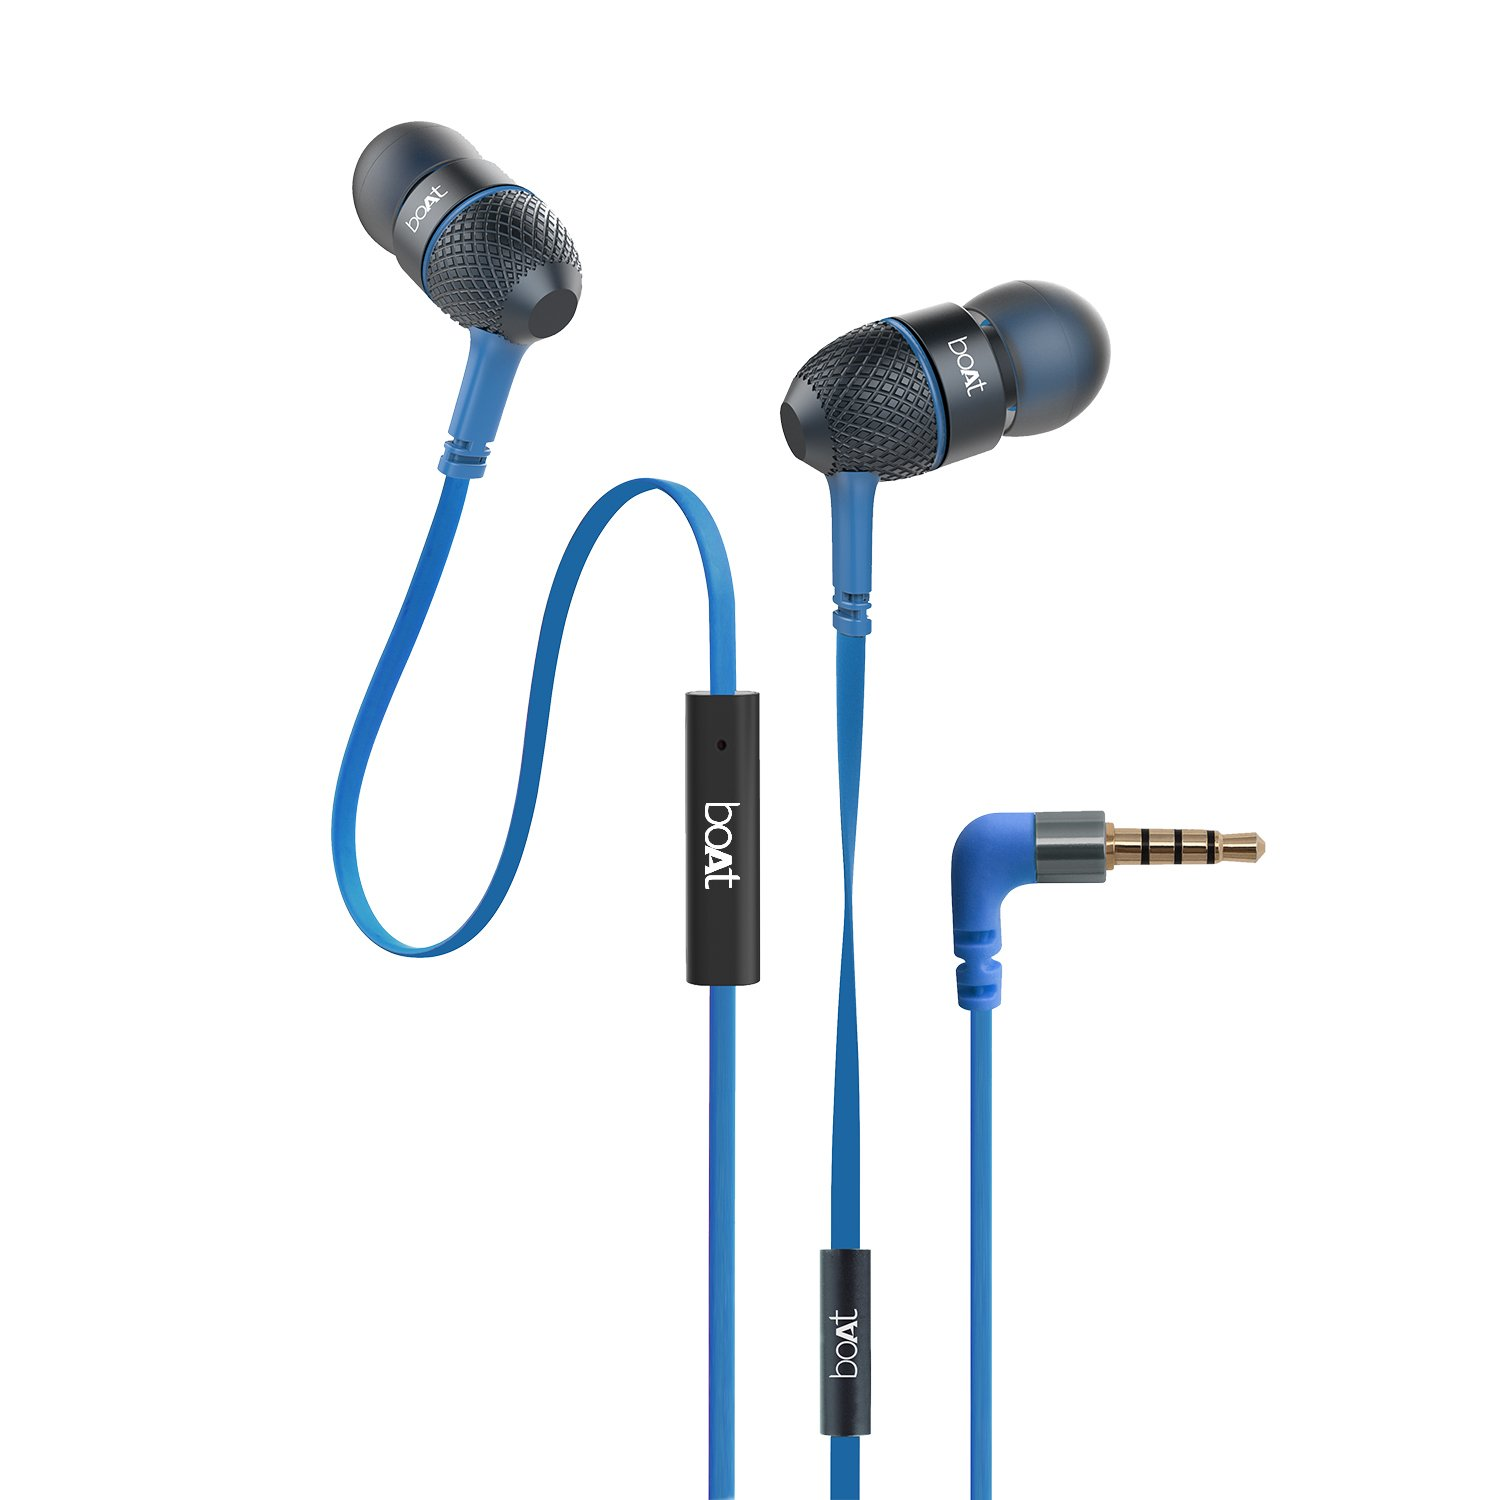 boAt BassHeads 225 in-Ear Wired Earphones with Super Extra Bass, Metallic Finish, Tangle-Free Cable and Gold Plated Angled Jack (Blue)